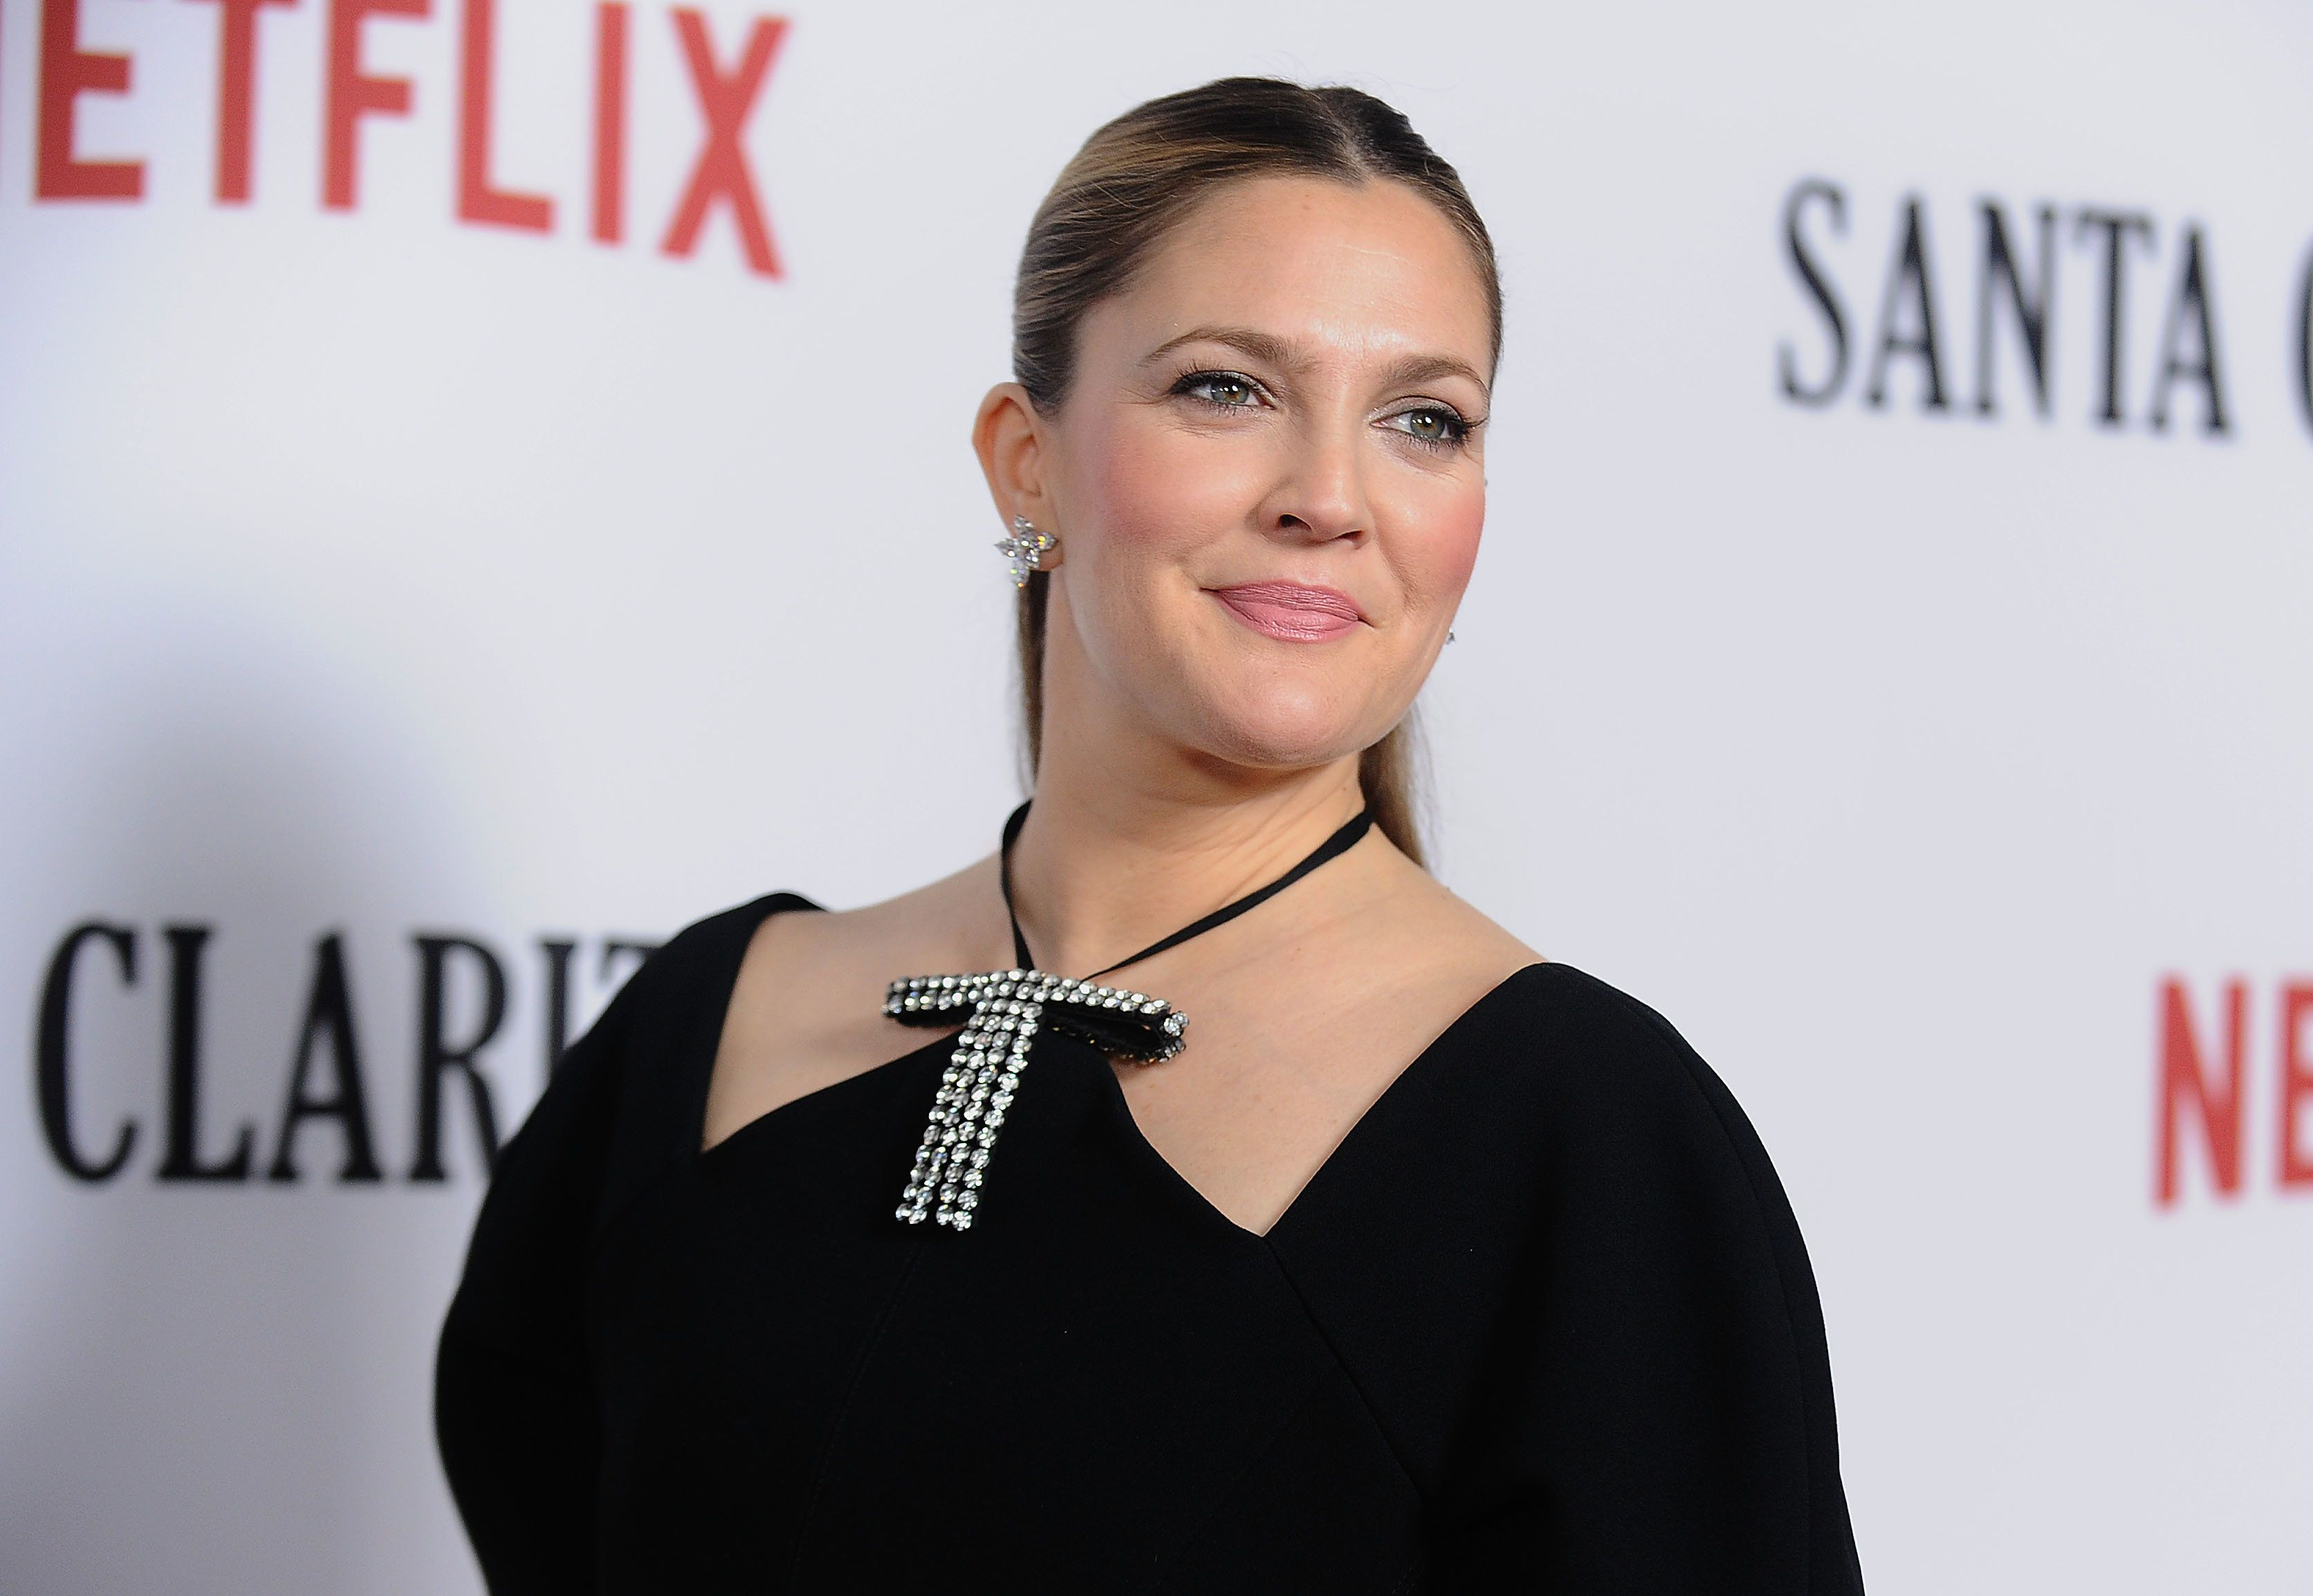 HOLLYWOOD, CA - FEBRUARY 01:  Actress Drew Barrymore attends the premiere of 'Santa Clarita Diet' at ArcLight Cinemas Cinerama Dome on February 1, 2017 in Hollywood, California.  (Photo by Jason LaVeris/FilmMagic)